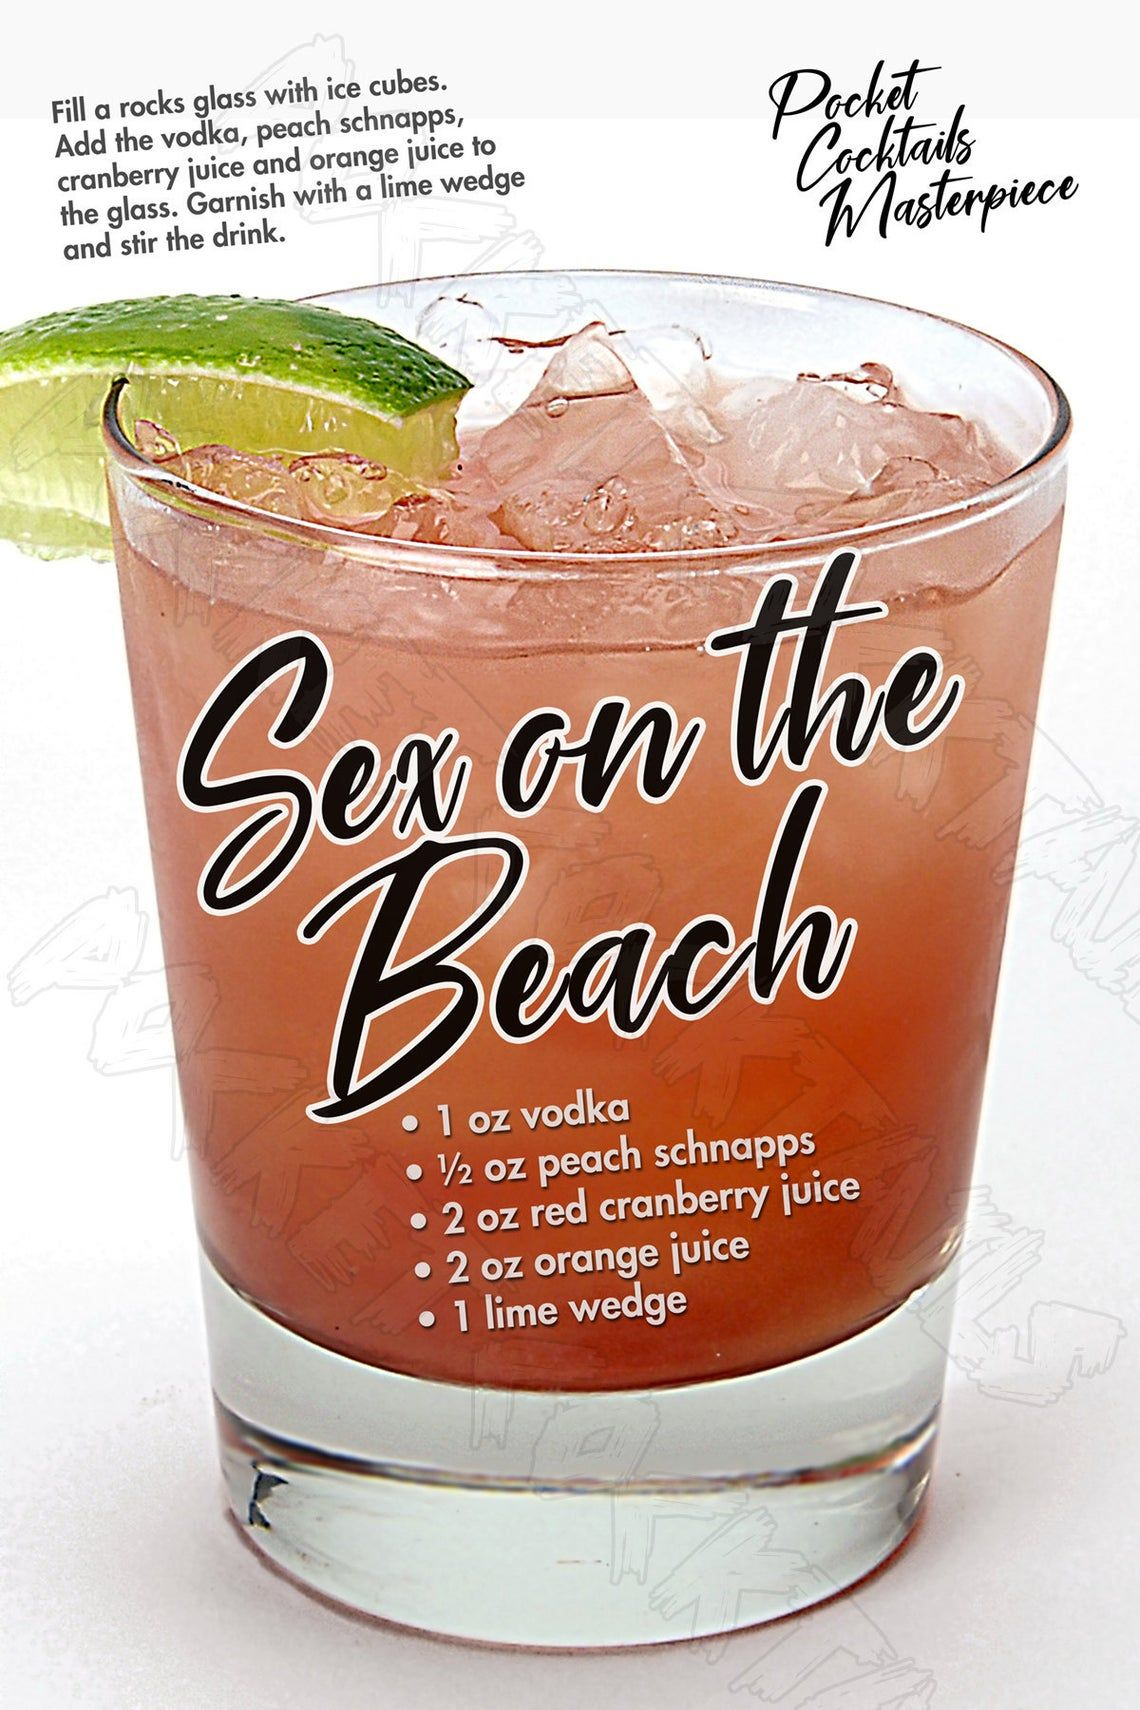 12x18 Sex on the Beach Cocktail Masterpiece Poster